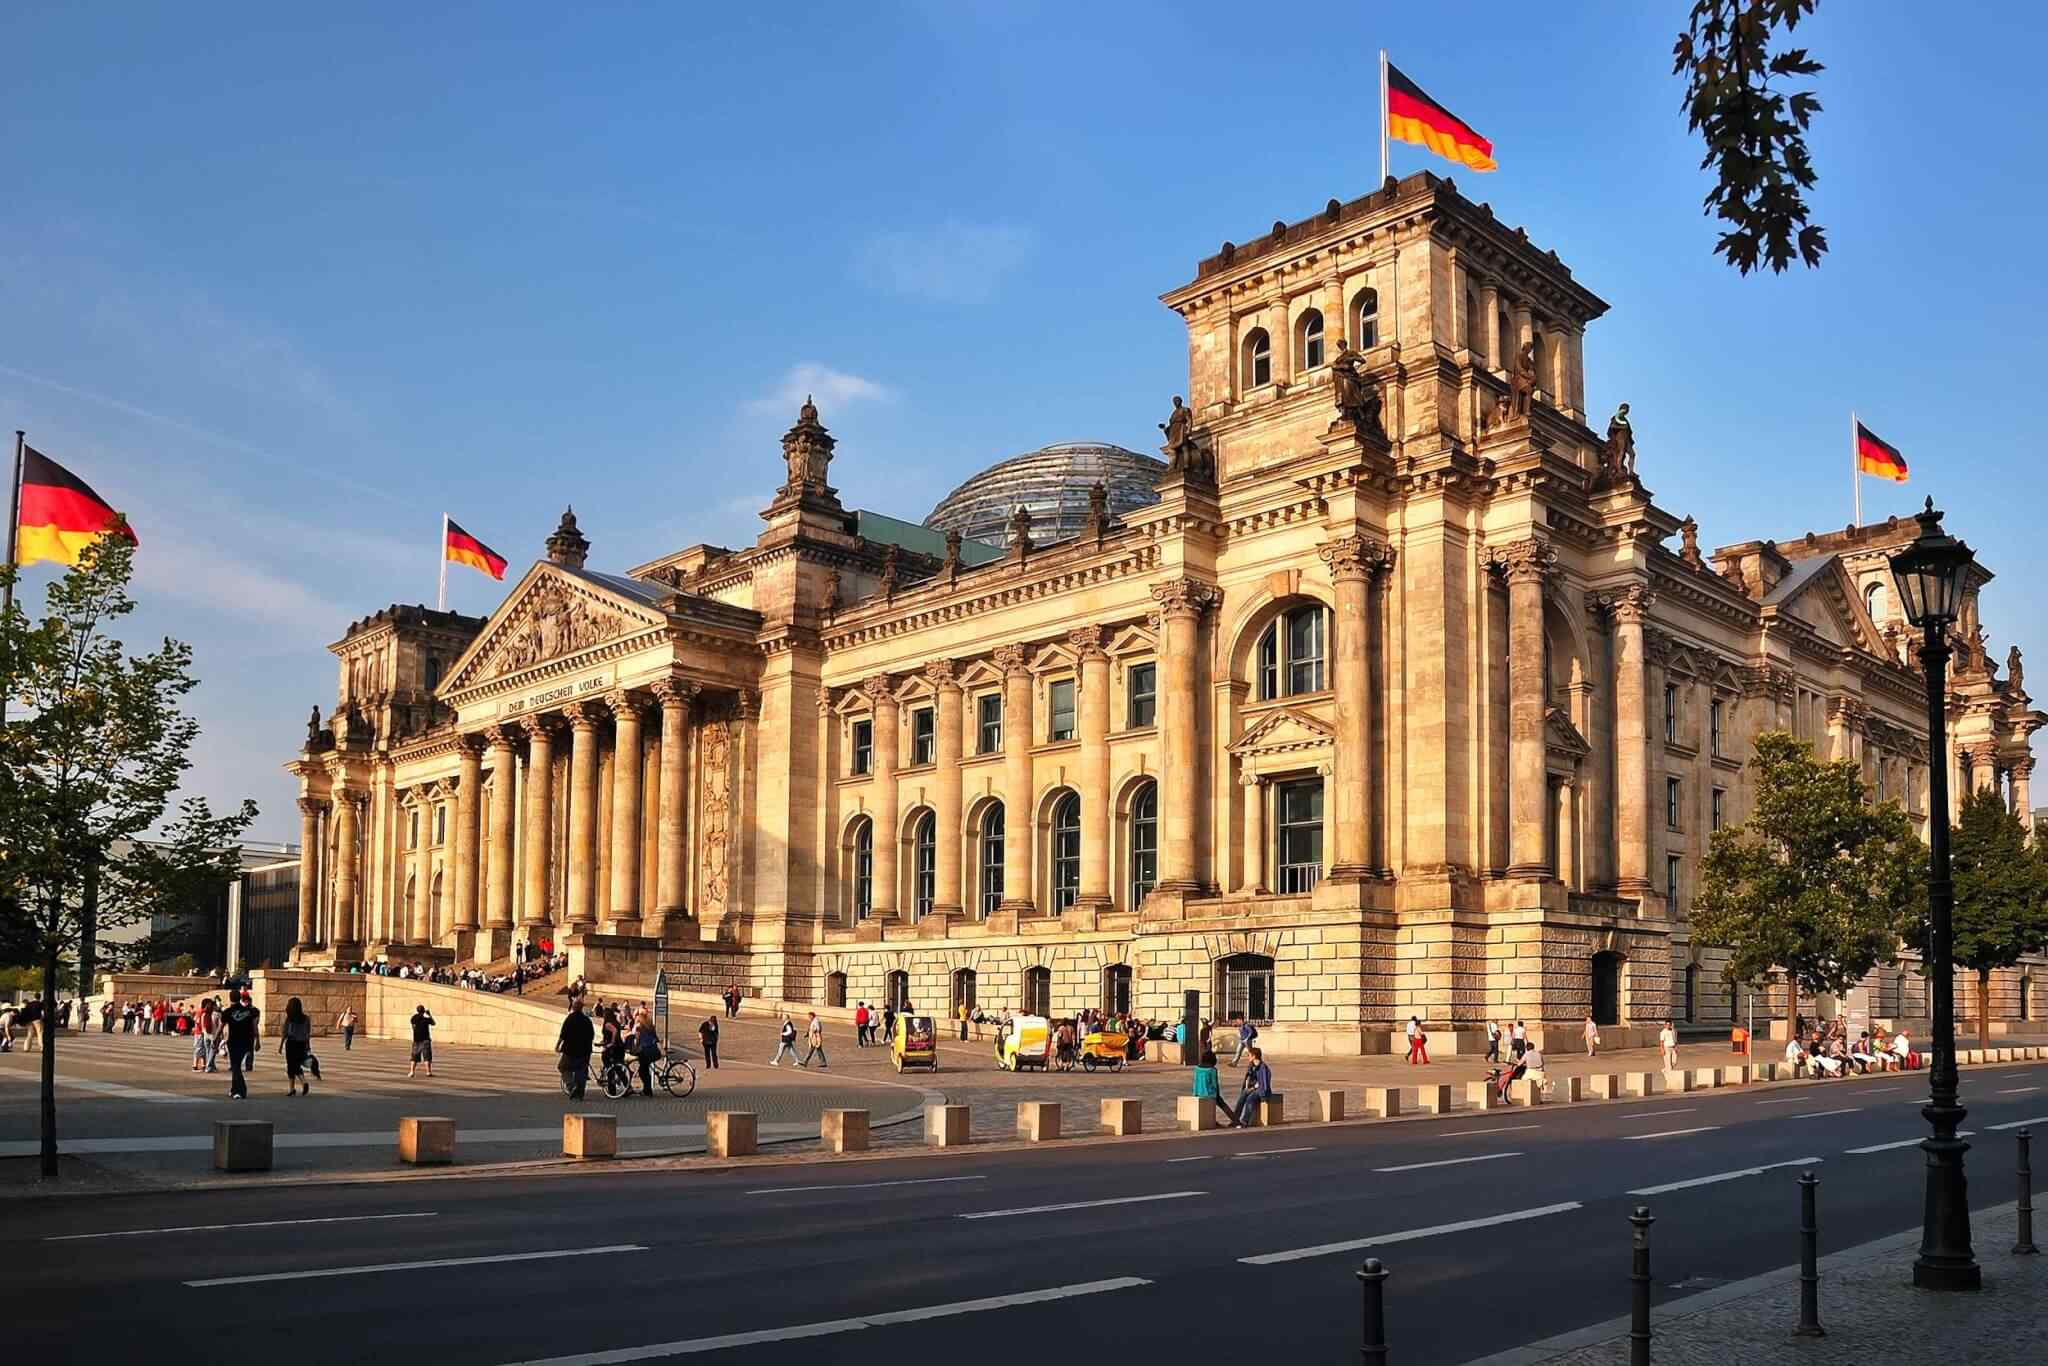 https://www.banitours.com/wp-content/uploads/2018/09/destination-berlin-01.jpg